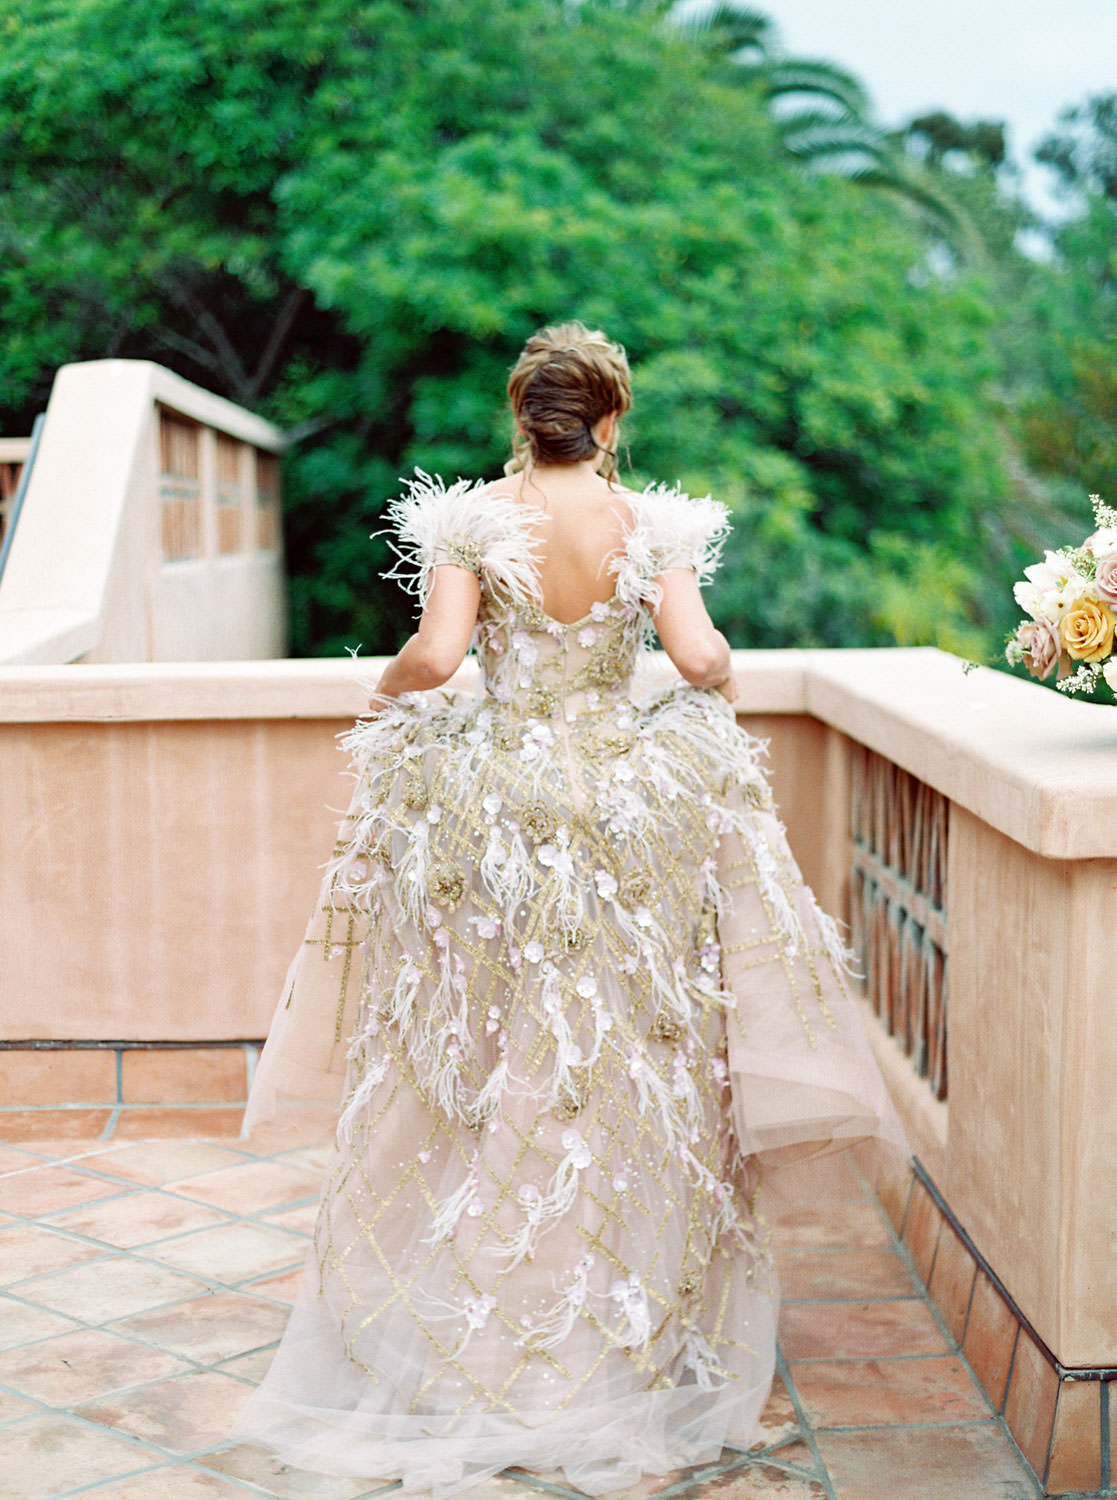 Bride running wearing a Marchesa couture gown with blush feathers, gold lines, and floral embellishments. Honey and Beekeeper Inspired Wedding at Rancho Valencia on film by Cavin Elizabeth Photography